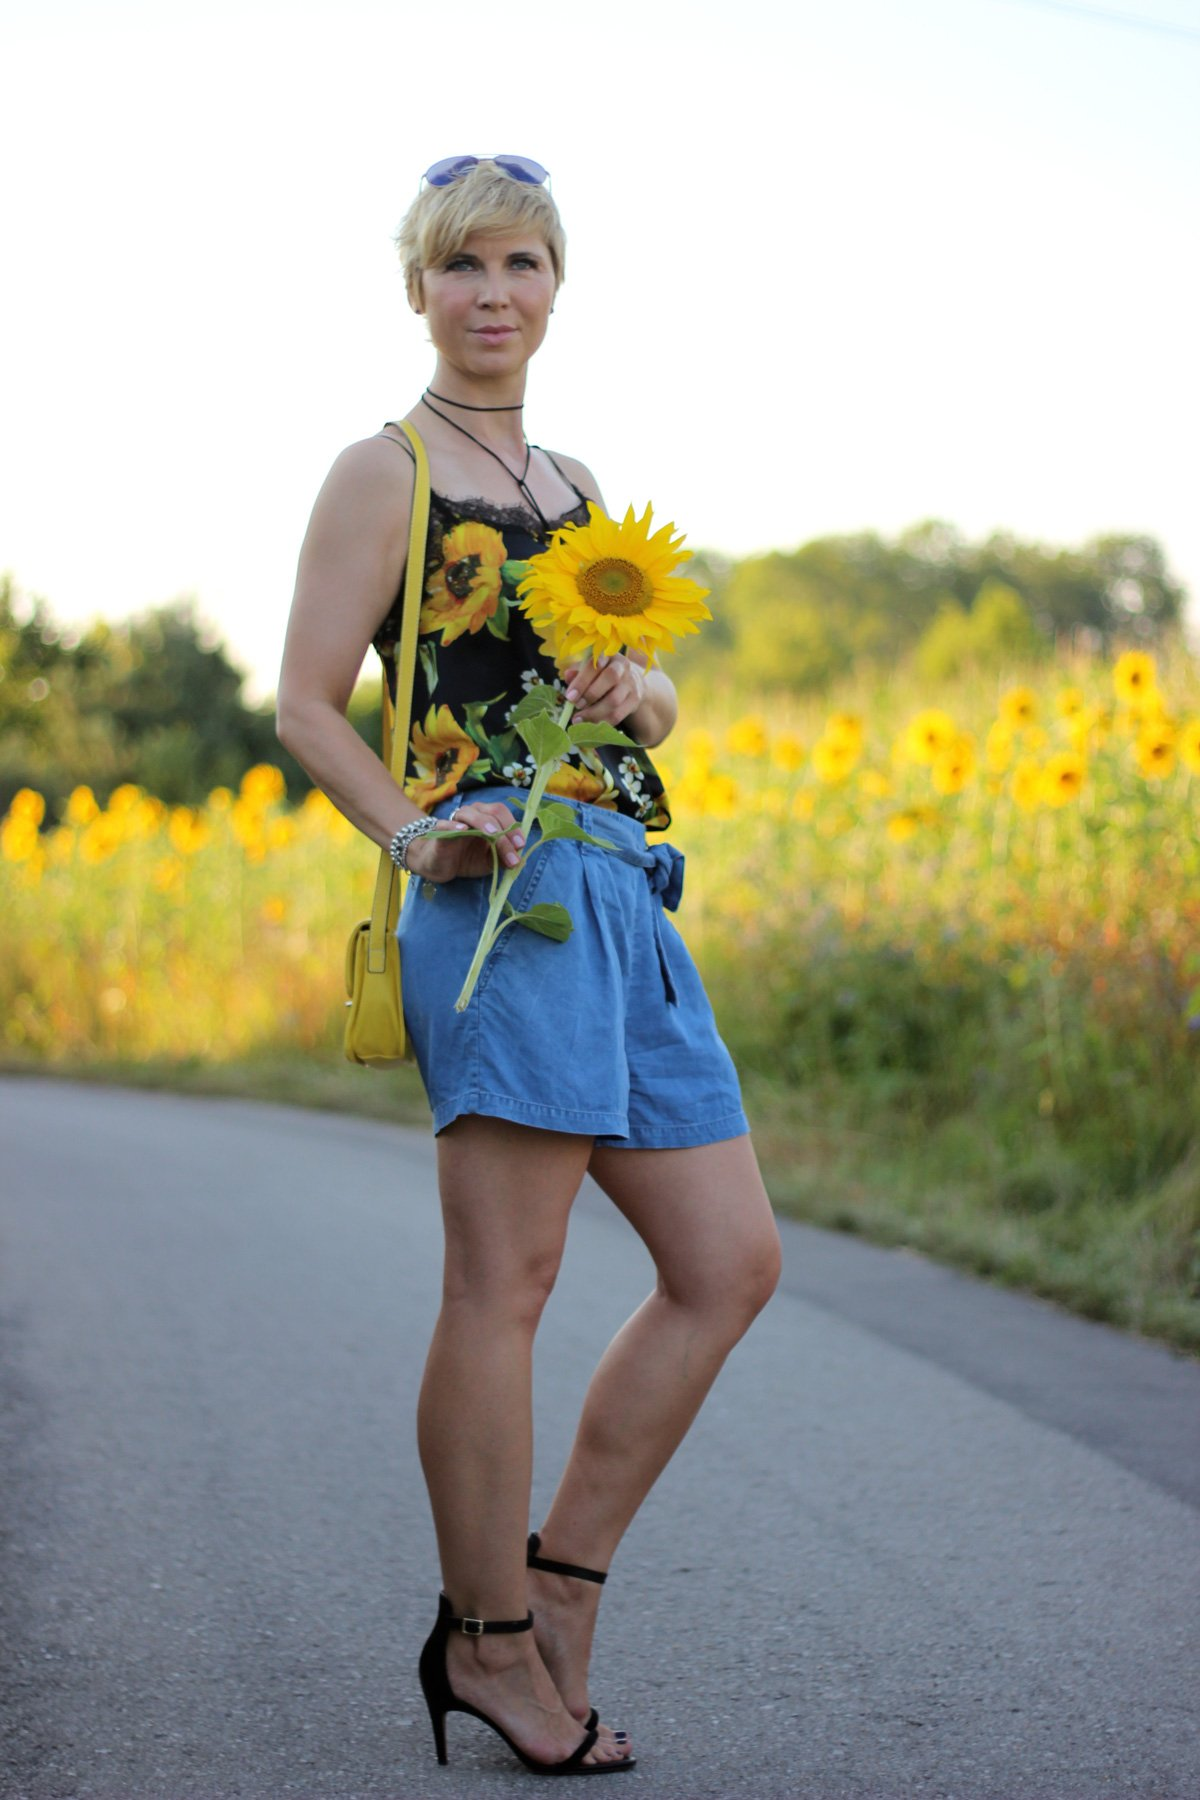 Conny-Doll-lifestyle: Shorts, Seidentop mit Sonnenblumenprint, Sandalen, Sommerlook